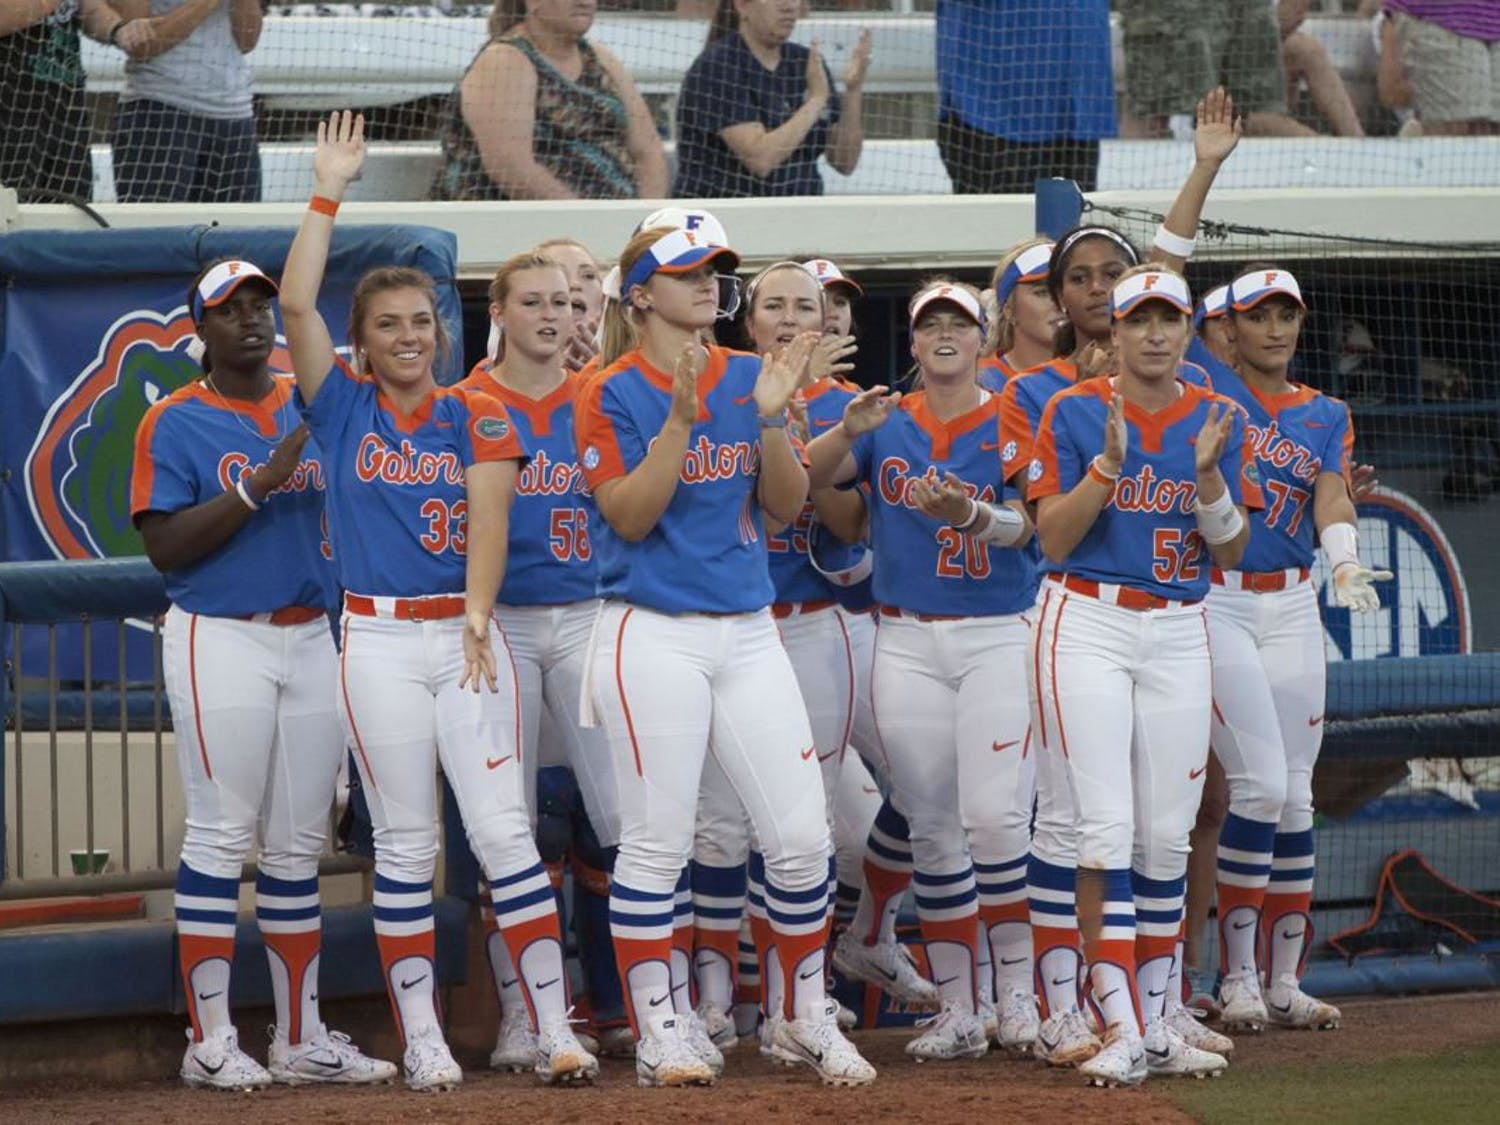 The Gators applaud outside of their dugout during a game last season